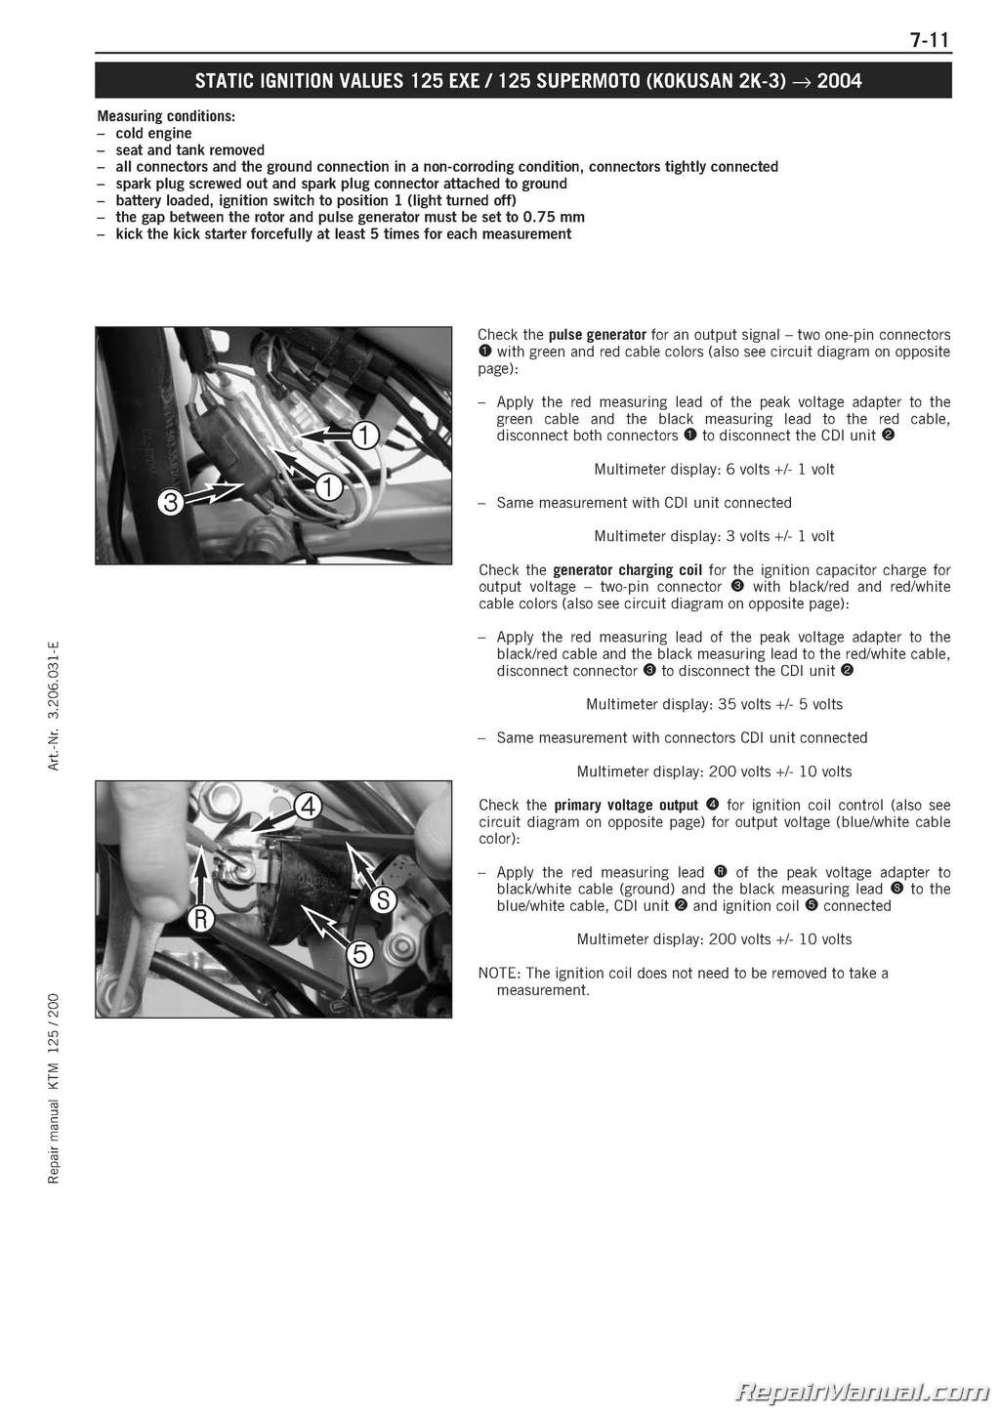 medium resolution of 1999 2006 ktm 125 200 two stroke engine service manual